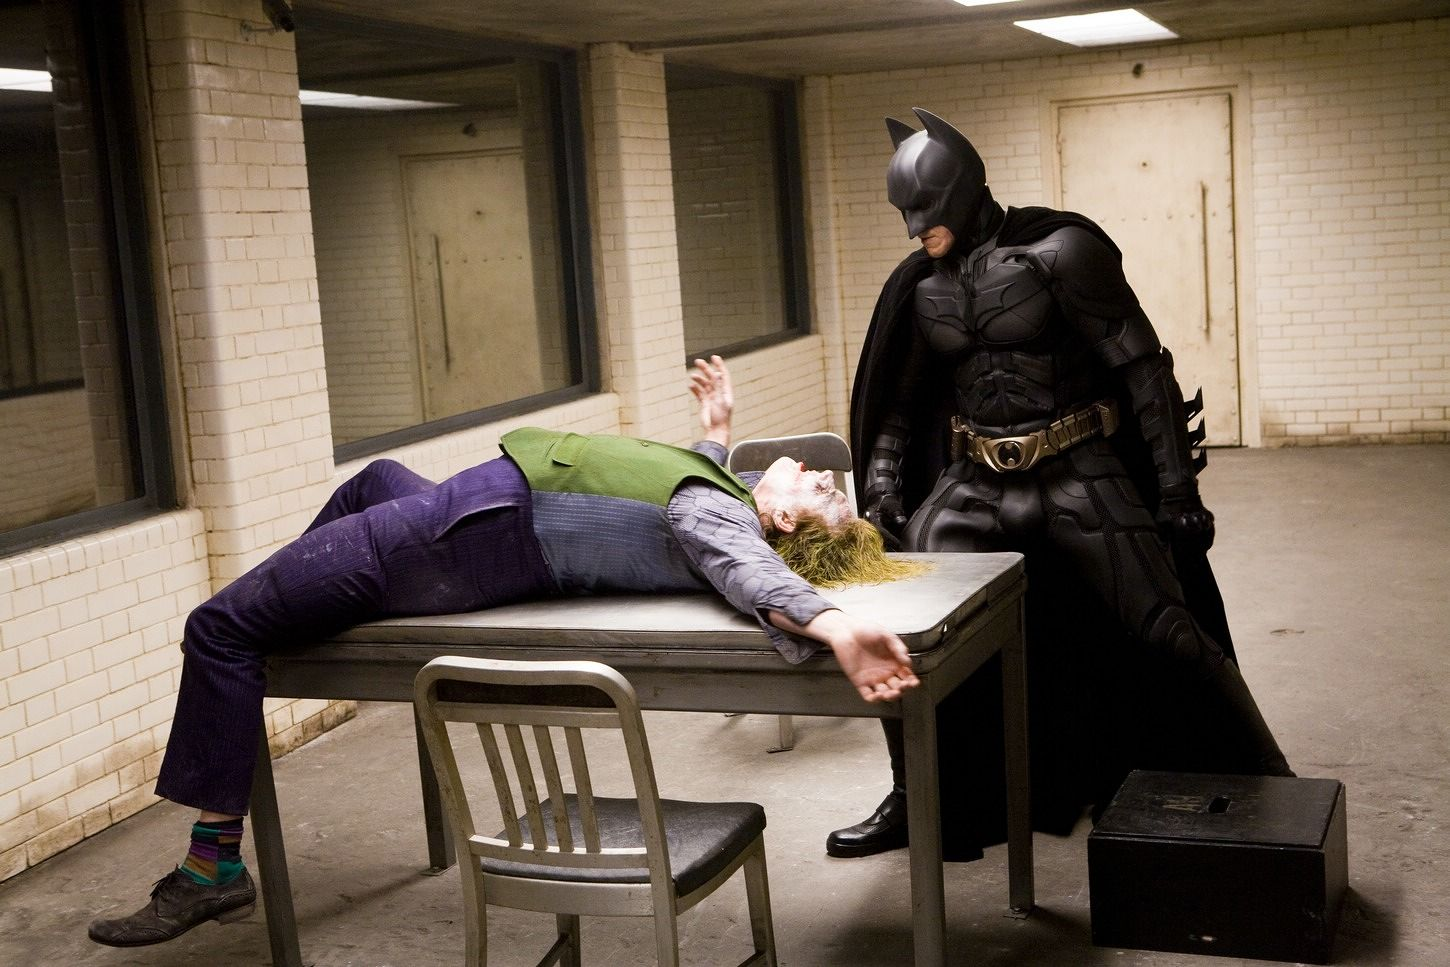 dark-knight-interrogation-christopher-nolan-24-i-bet-you-didn-t-know-about-these-goofs-in-the-dark-knight-jpeg-136258